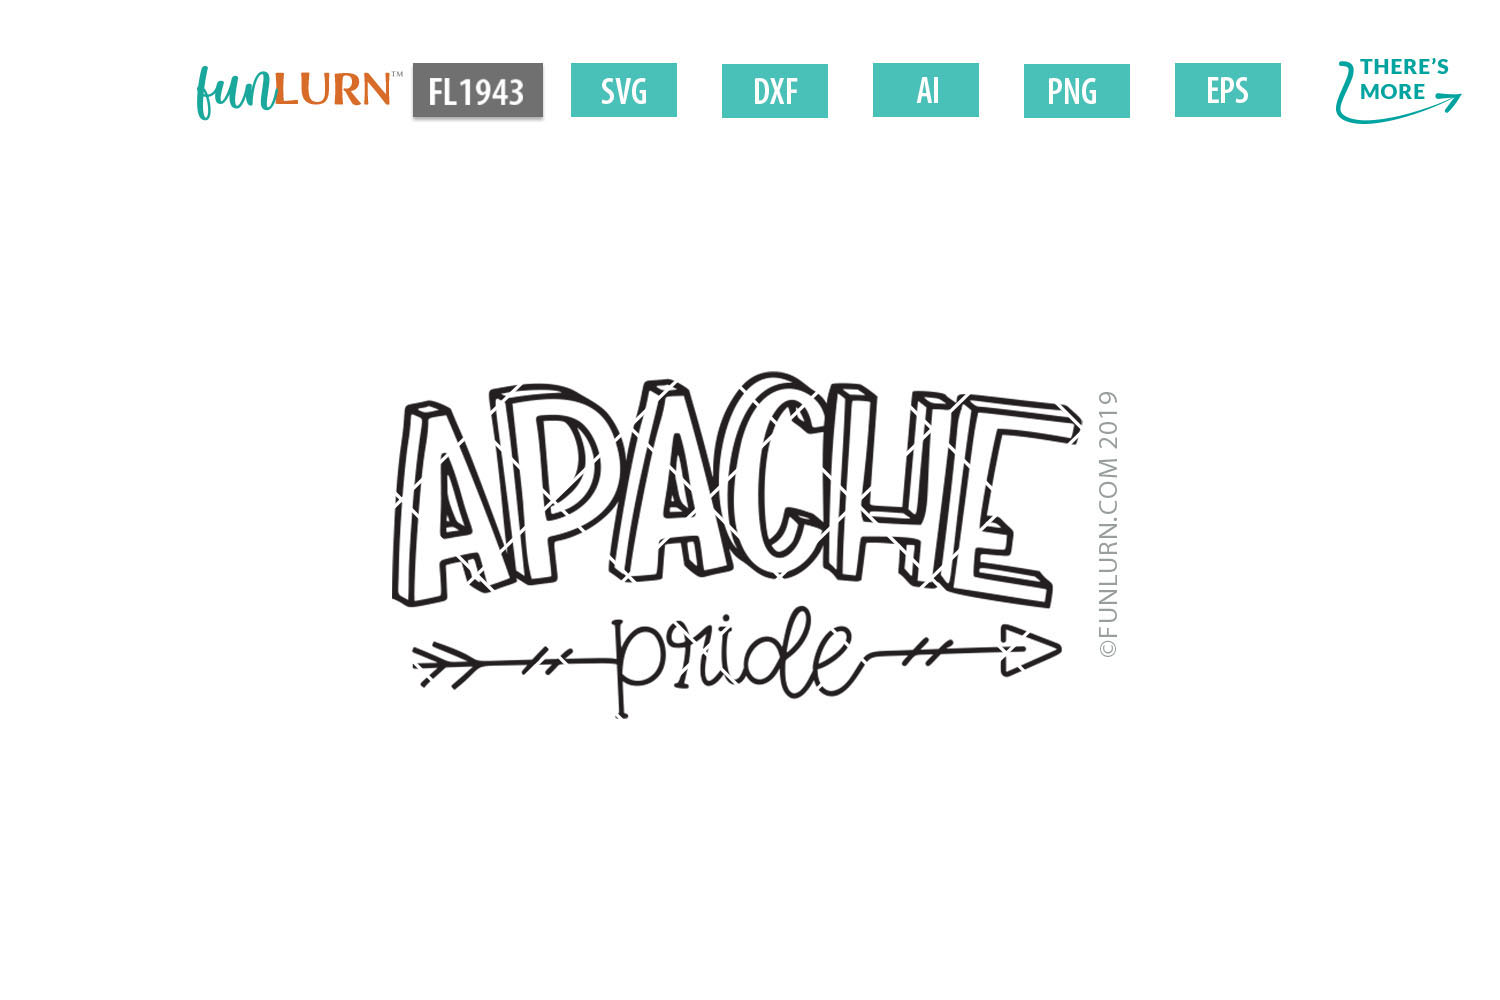 Apache Pride Team SVG Cut File example image 2